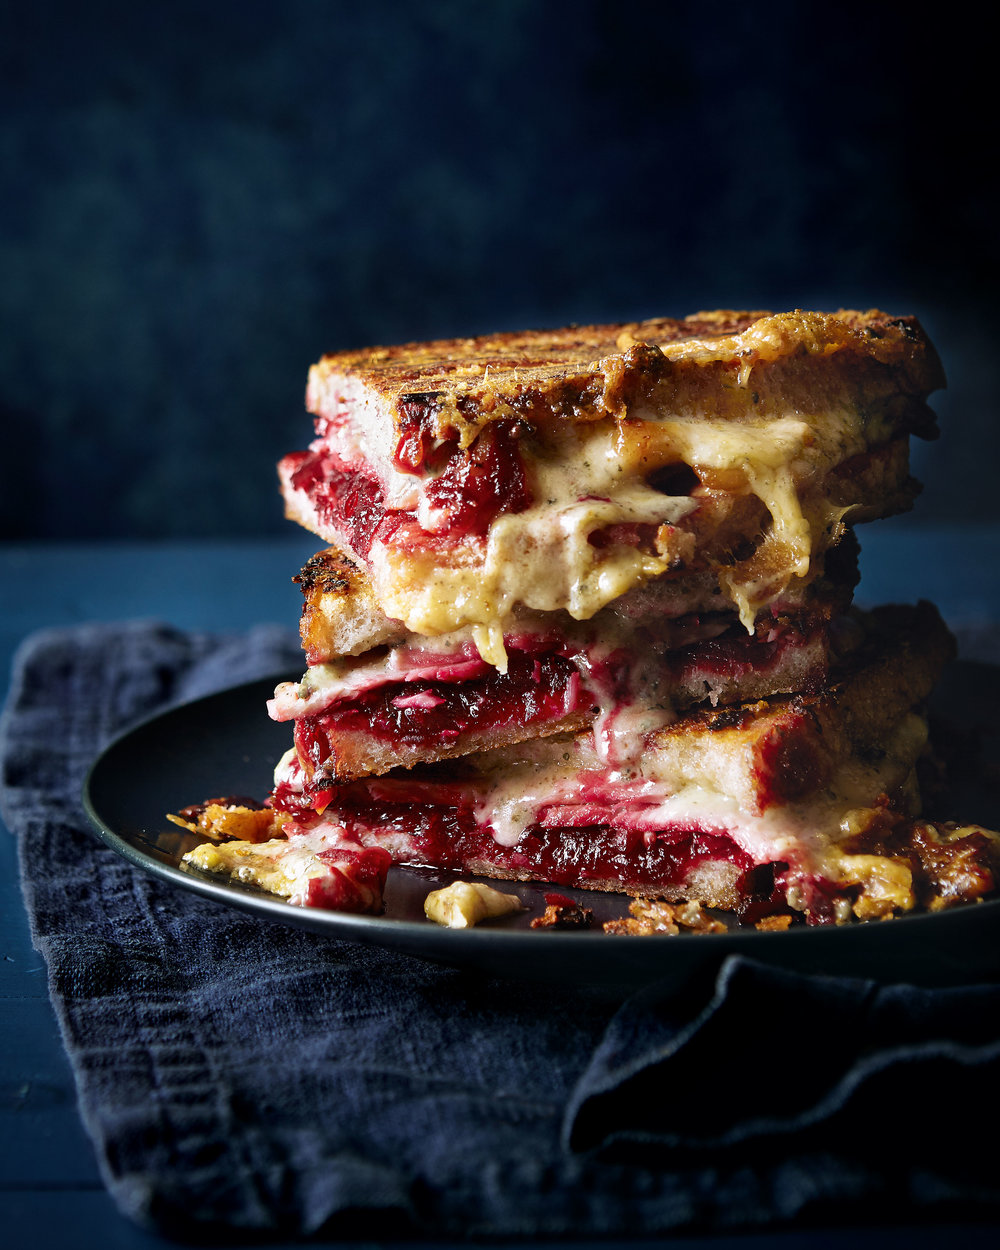 Ham and cheese toastie with beetroot and chilli chutney